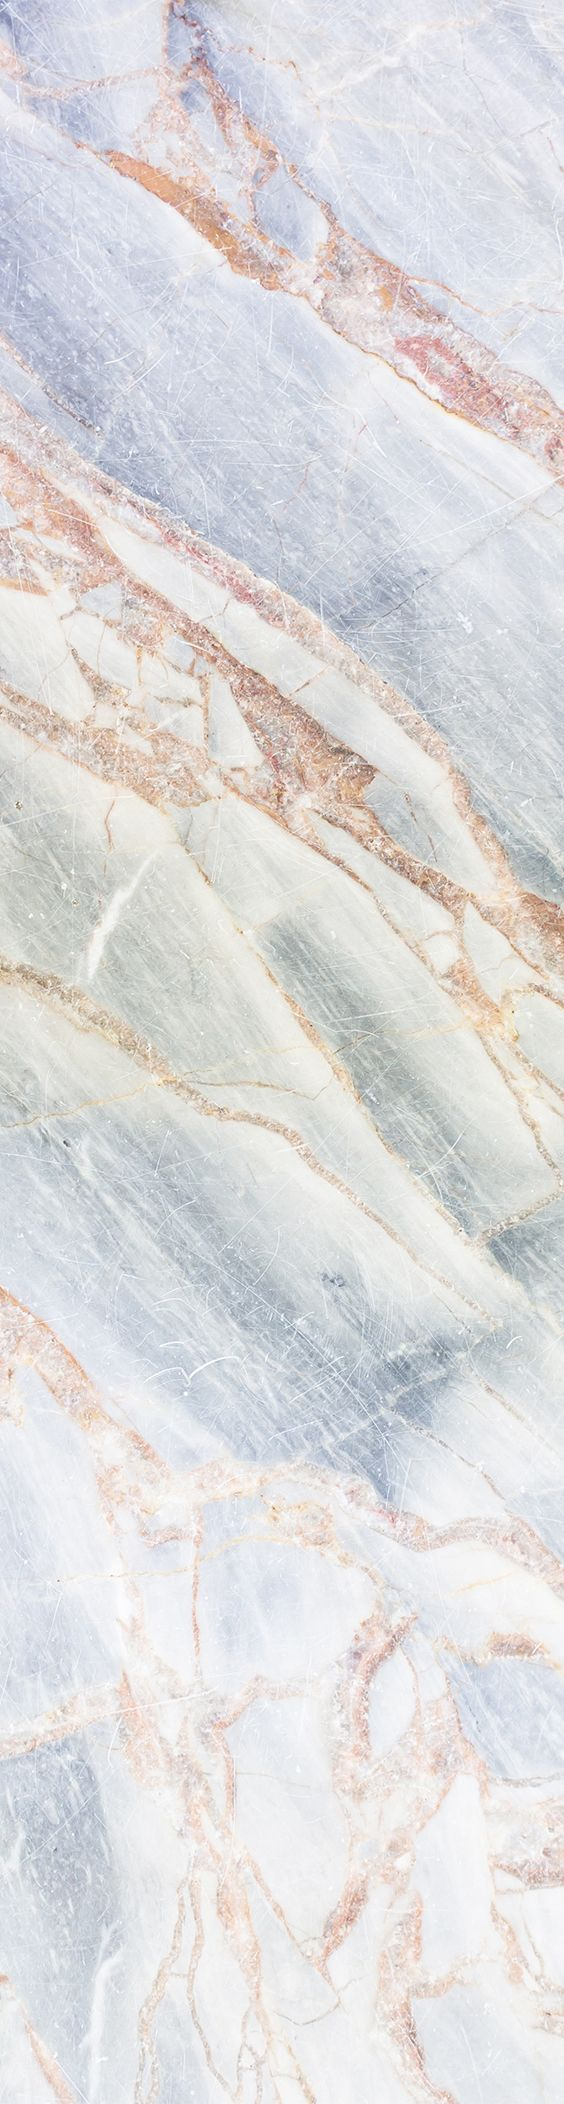 Get lost in the details with this decadent marble wallpaper design. Delicate blue texture is cut through with veins of bronze, making for a mesmerising wall mural. from muralswallpaper.com